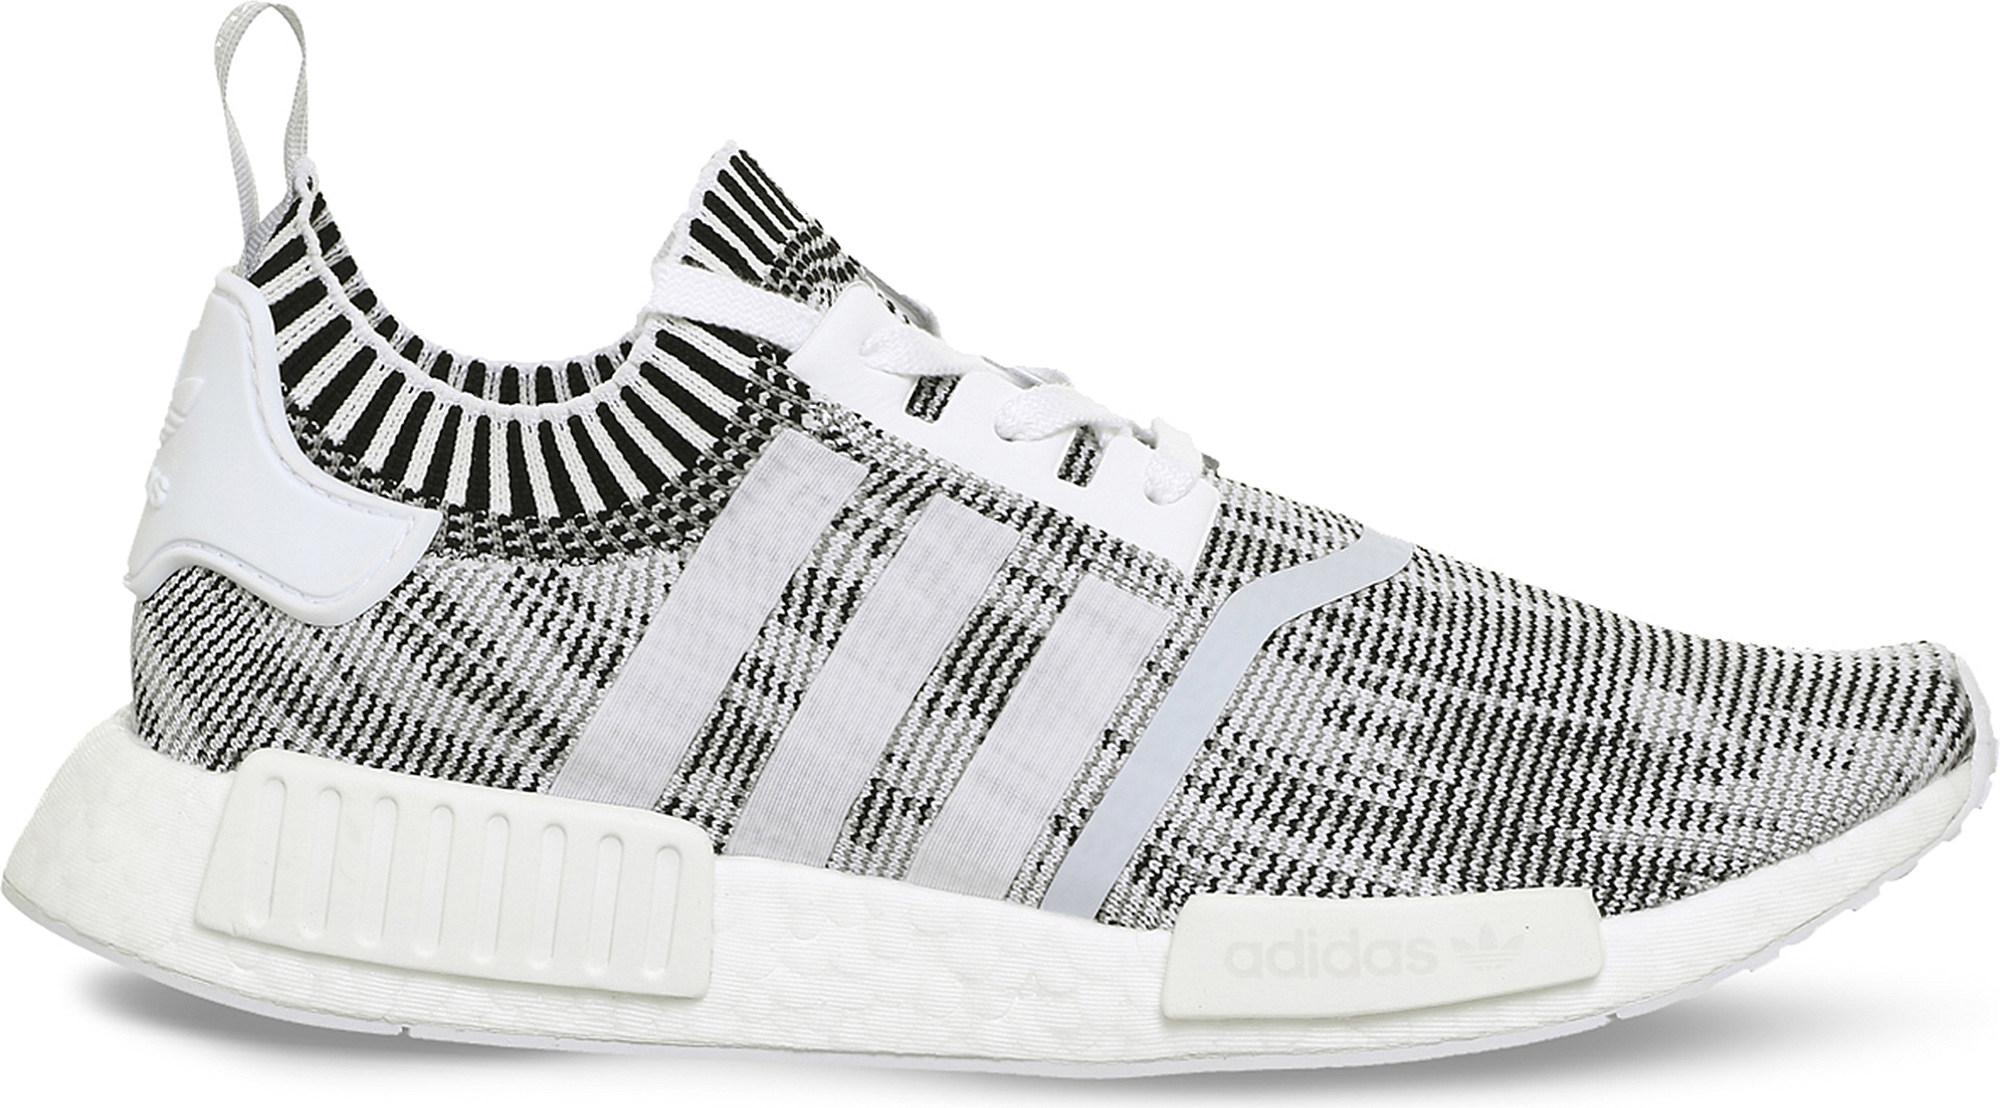 855f27ad384b adidas Originals Nmd R1 Primeknit Trainers in White for Men - Lyst